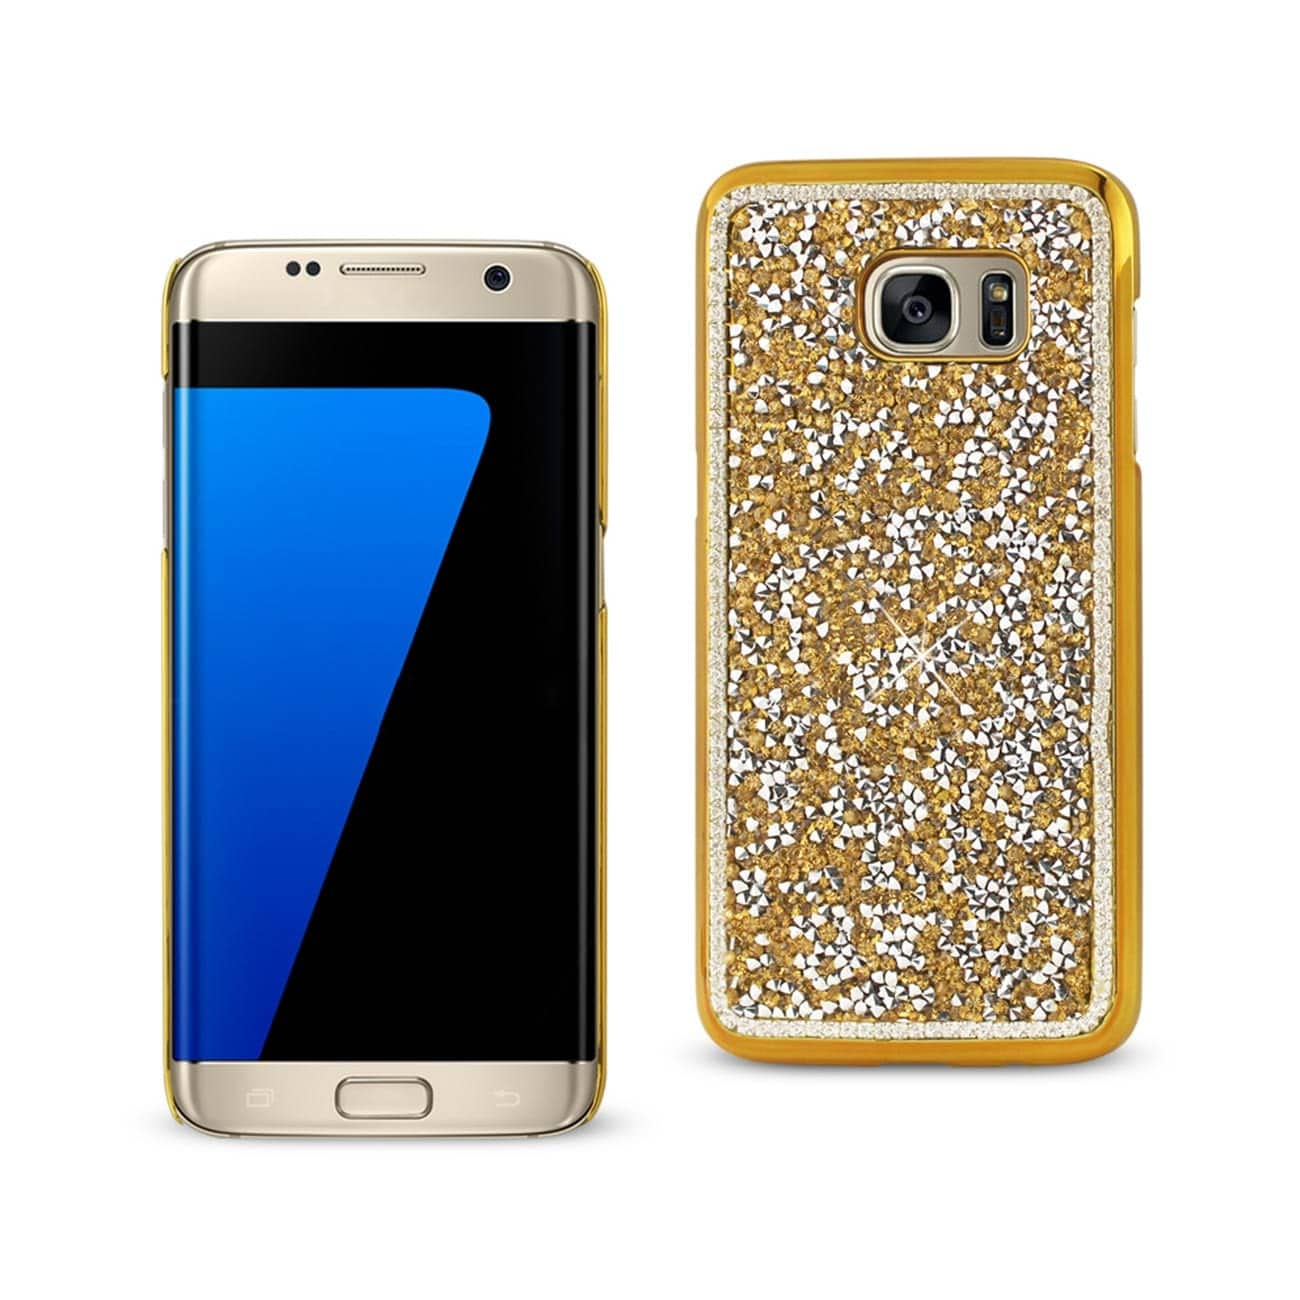 SAMSUNG GALAXY S7 EDGE JEWELRY BLING RHINESTONE CASE IN GOLD